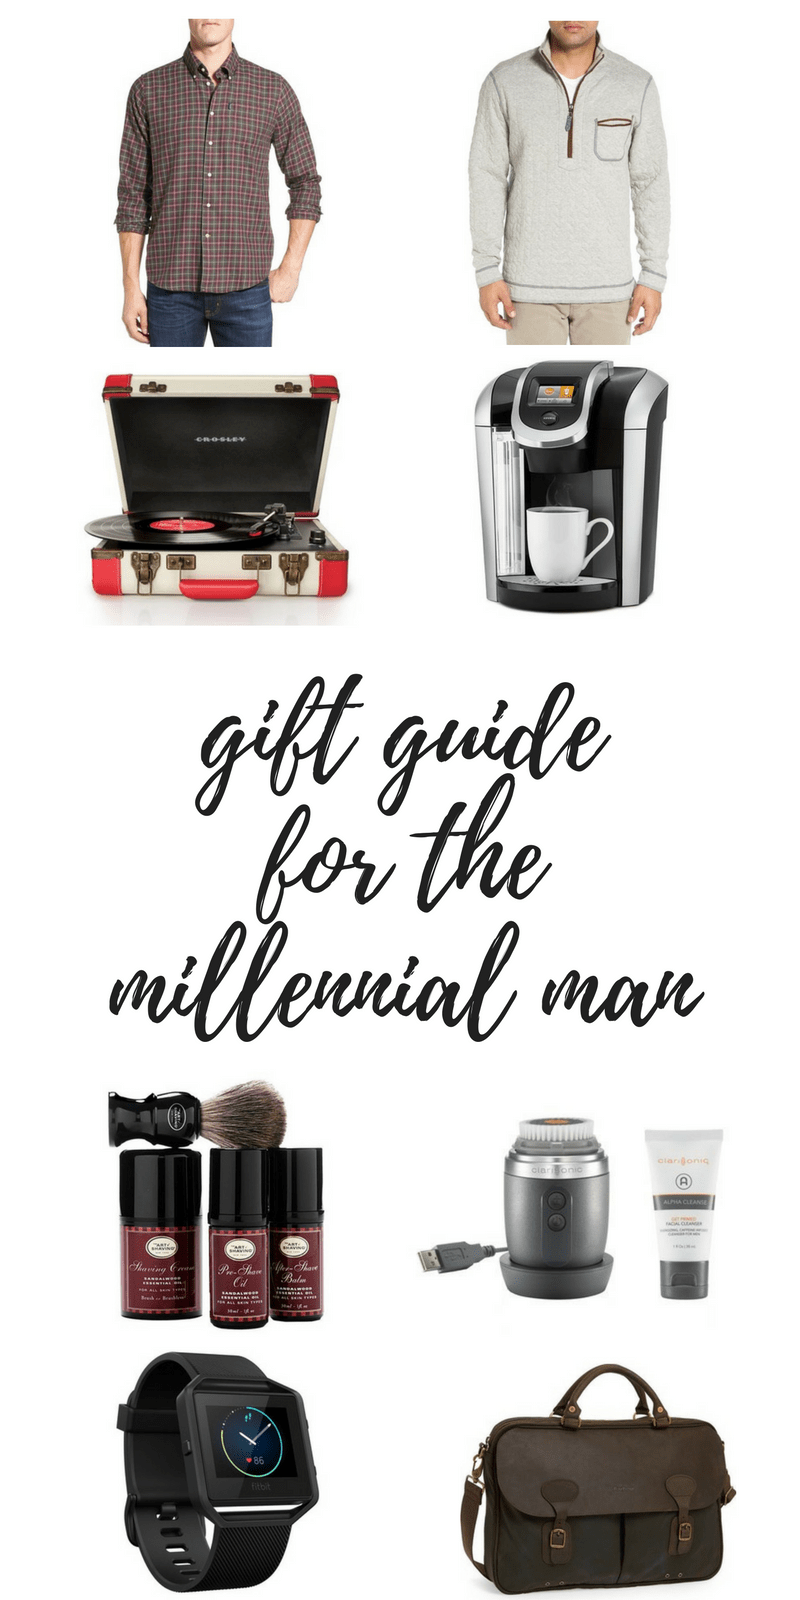 Gift Guide for the Millenial Man! Holidays? Birthday? Graduation? Special event? We've got you covered!